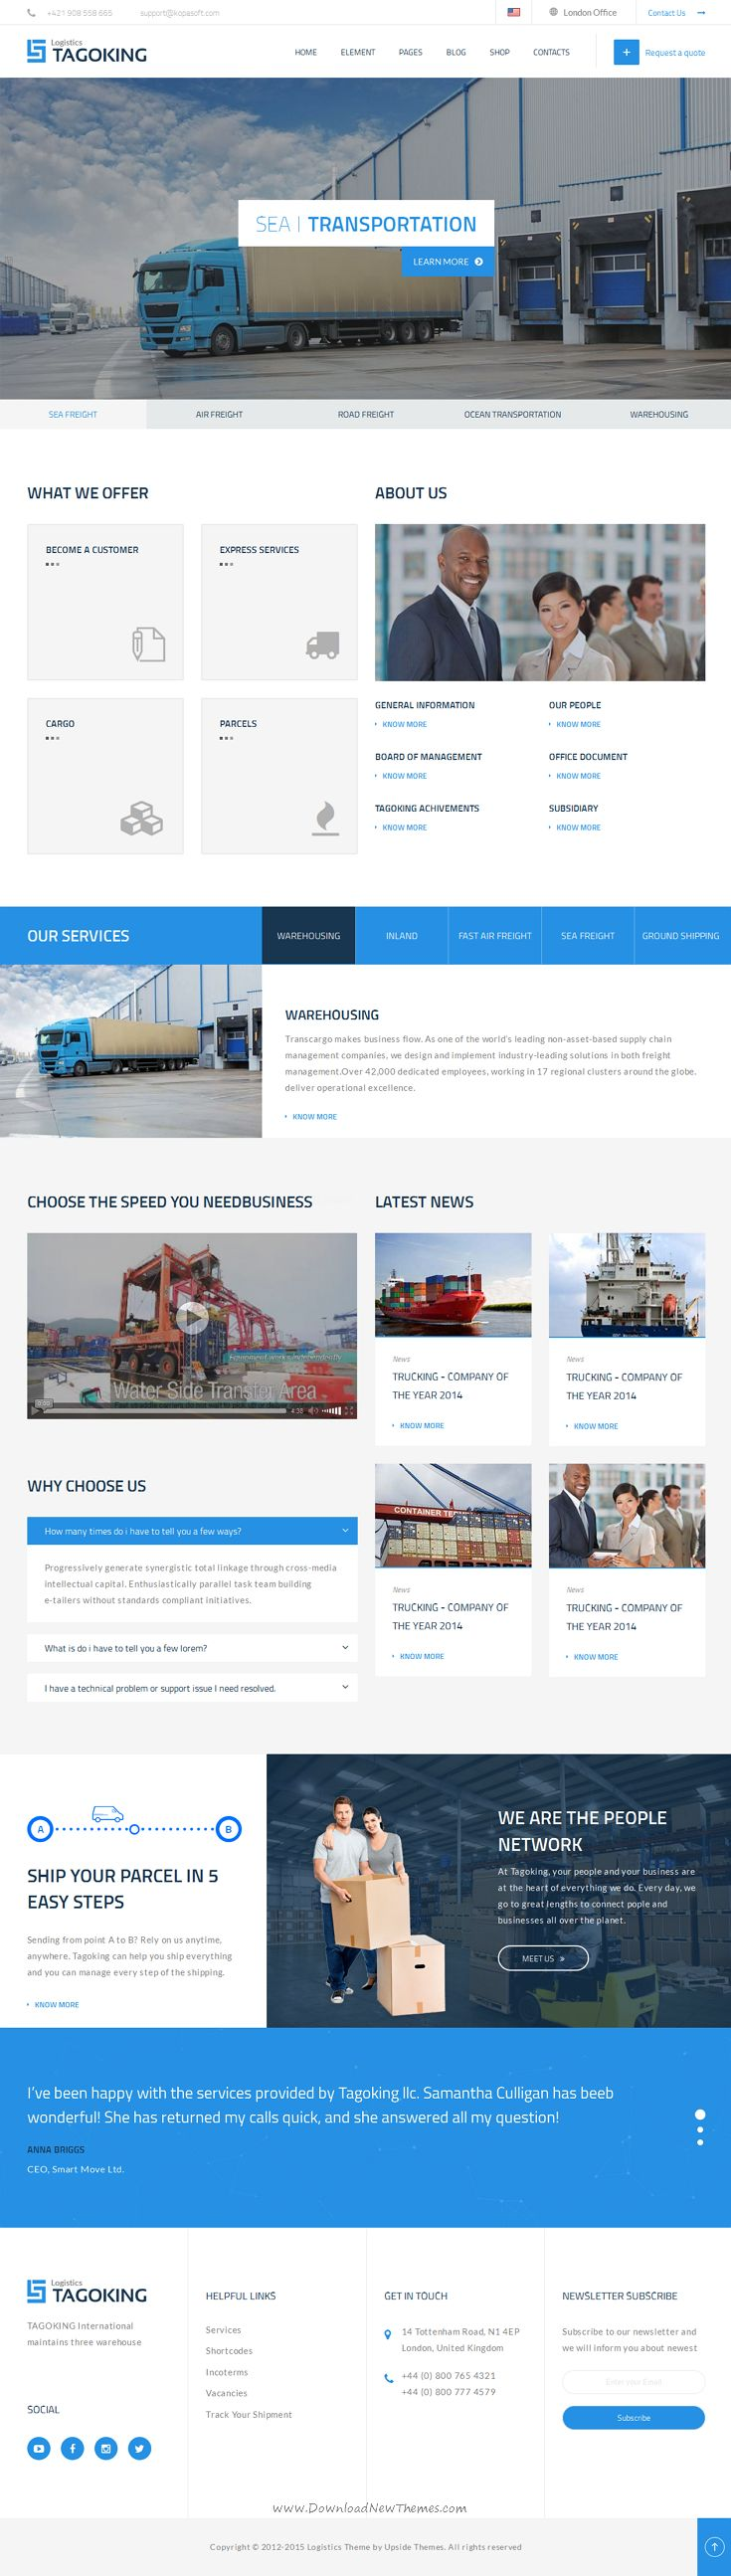 Tagoking is a professional #website #template perfect for Freight, #Logistics and Transportation.